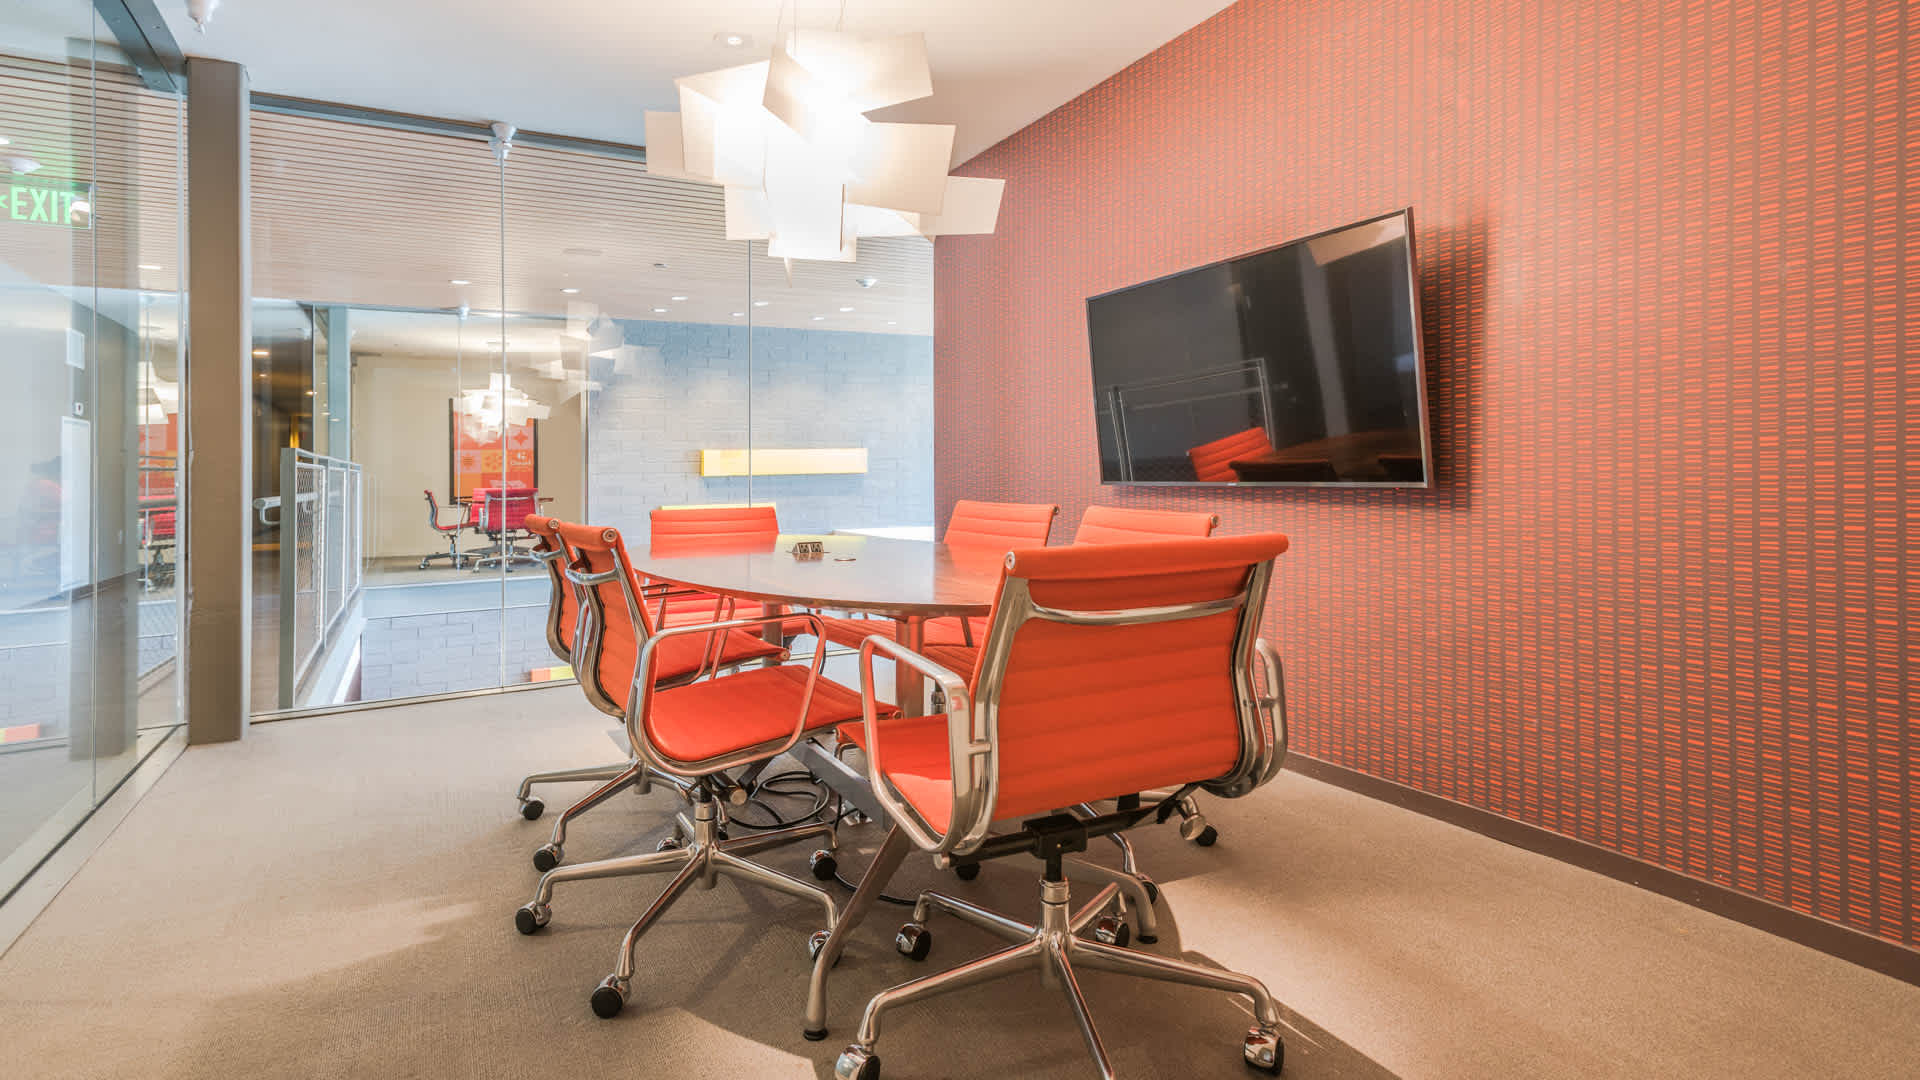 Girard apartments conference room